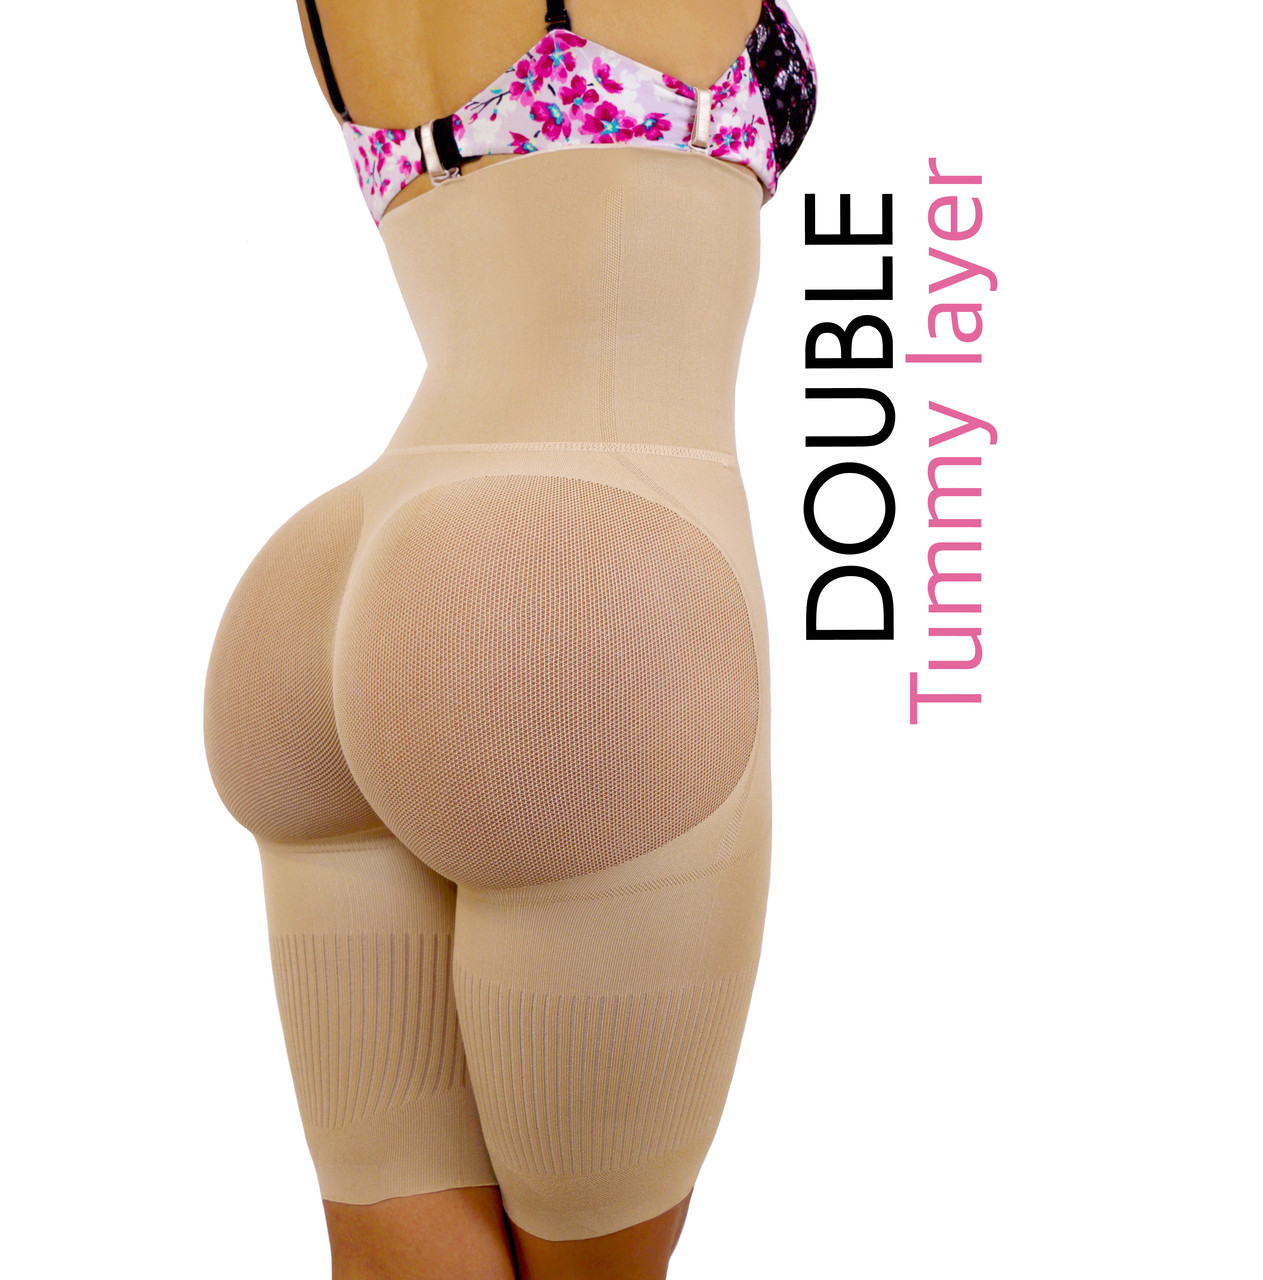 370454b26c4 Happy Butt N°7 Double Tummy Layer - YAHAIRA INC